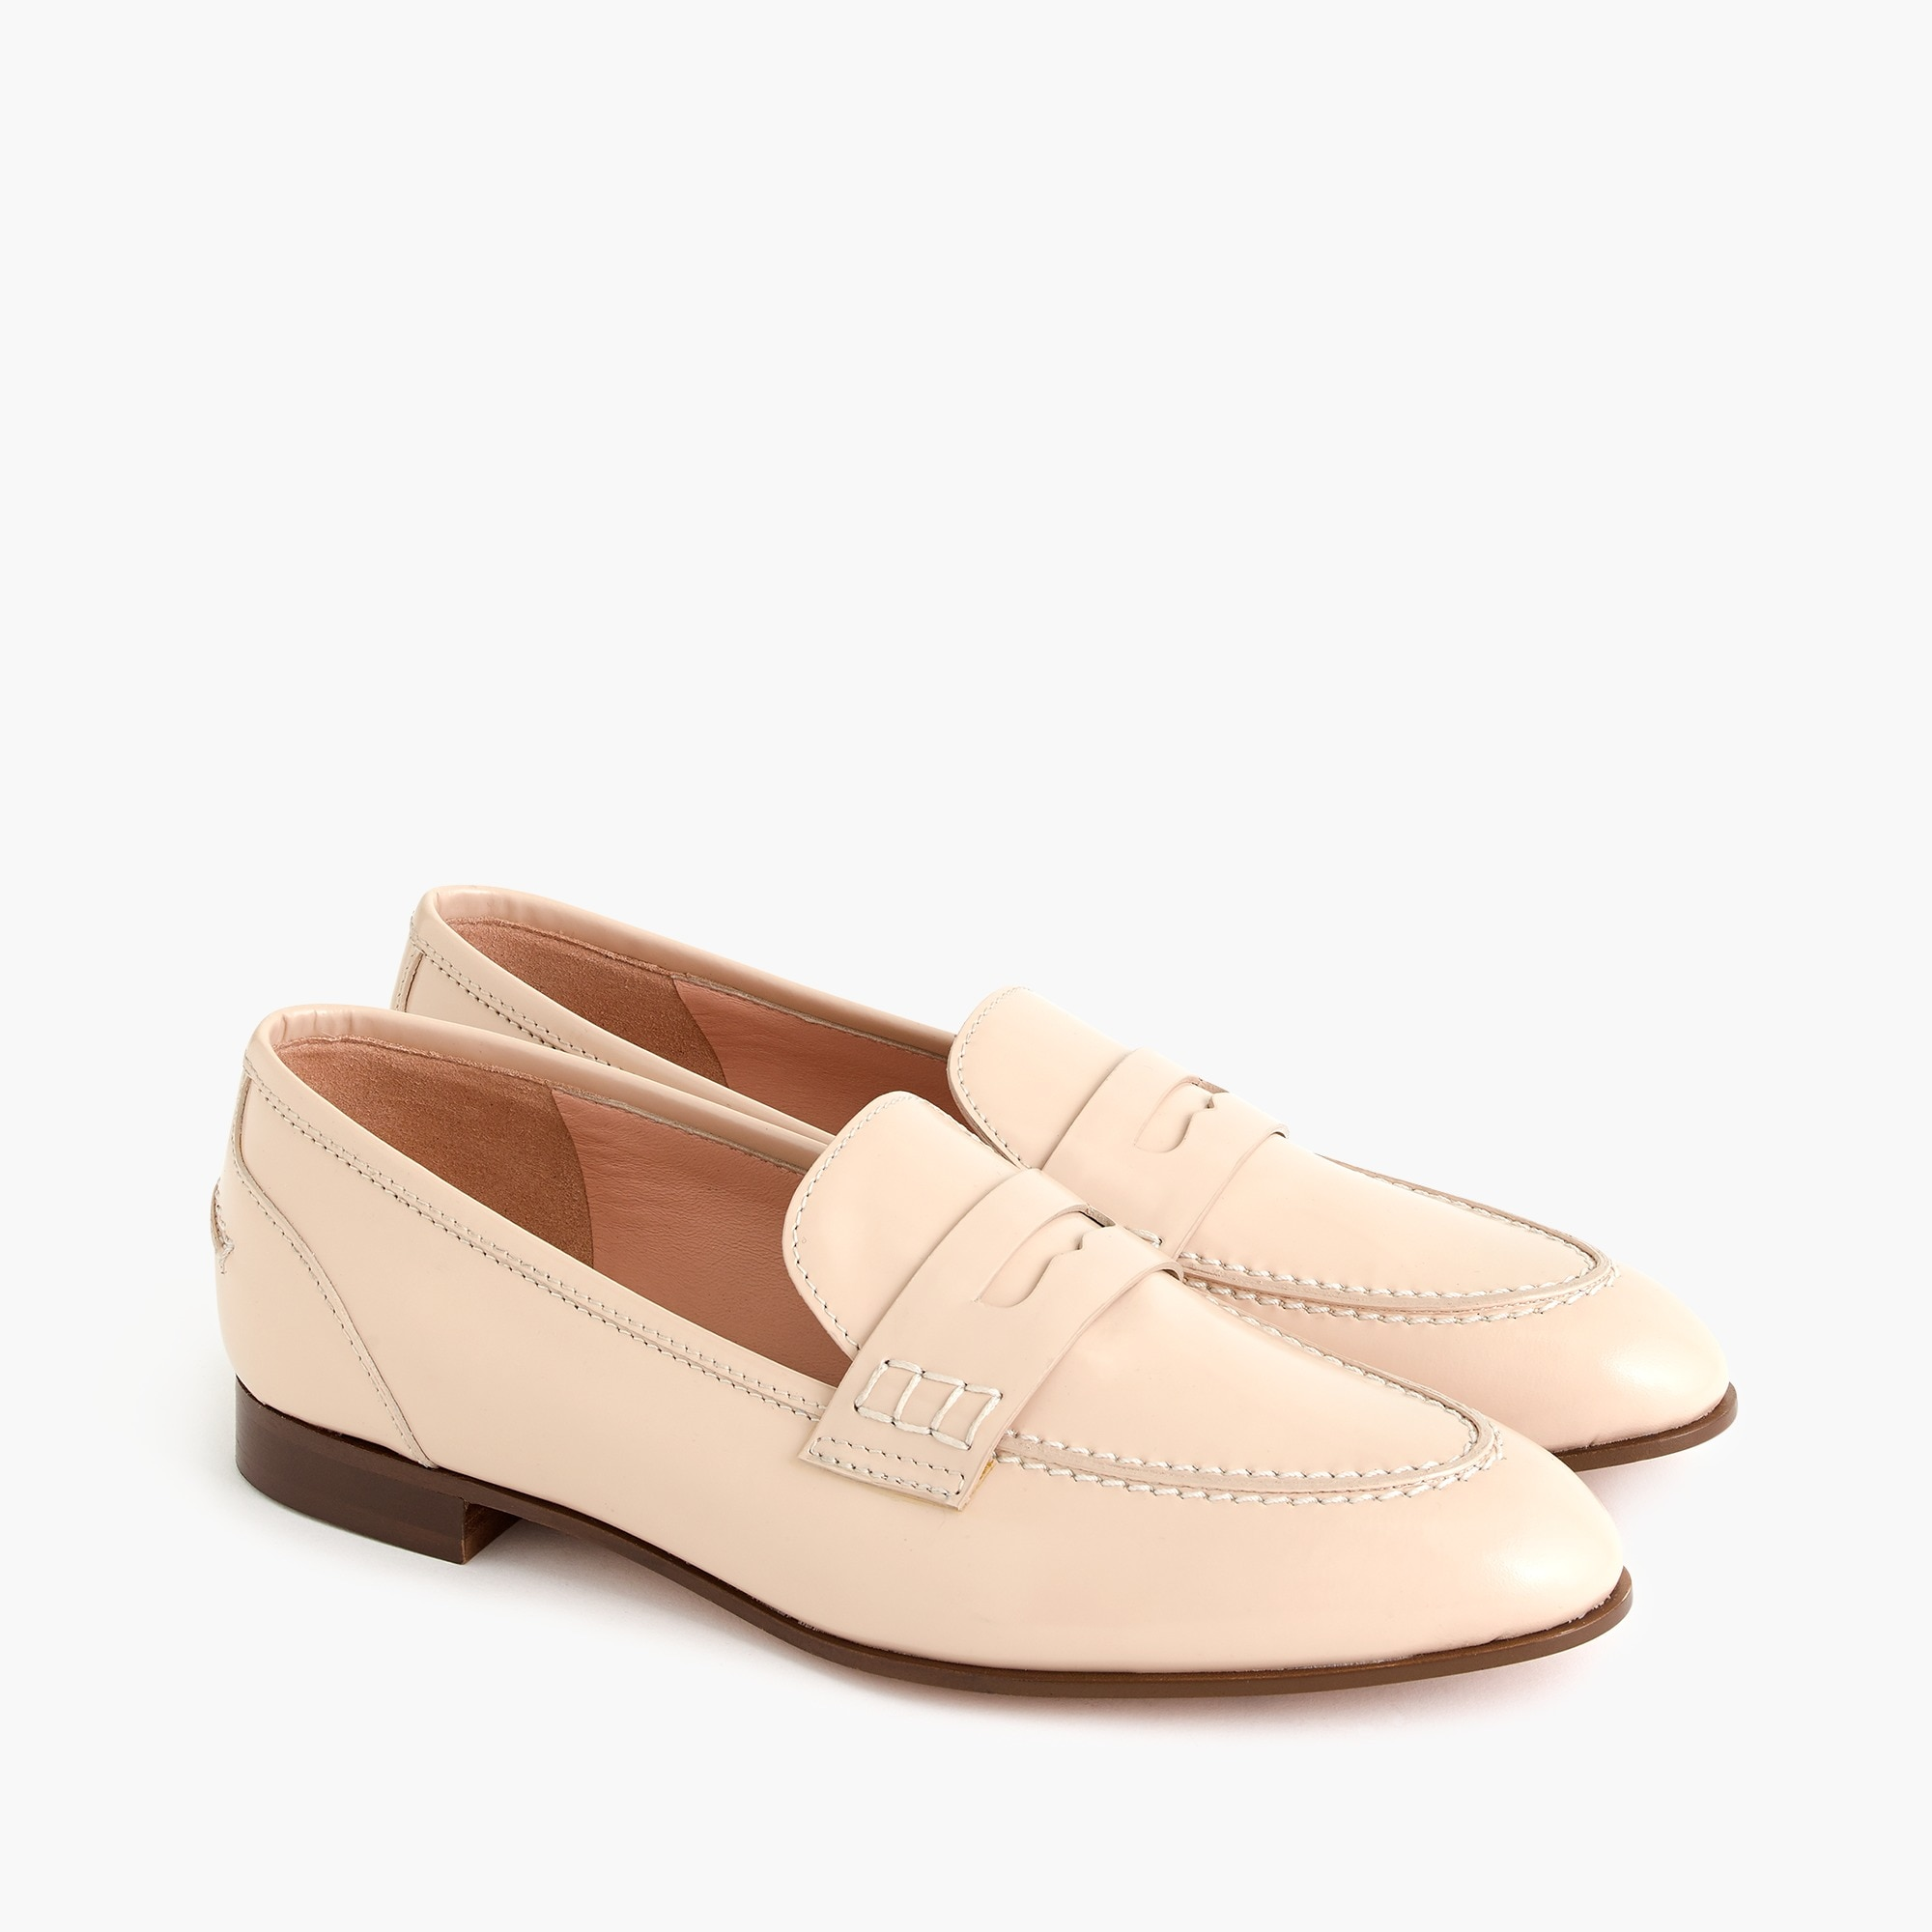 womens Academy penny loafers